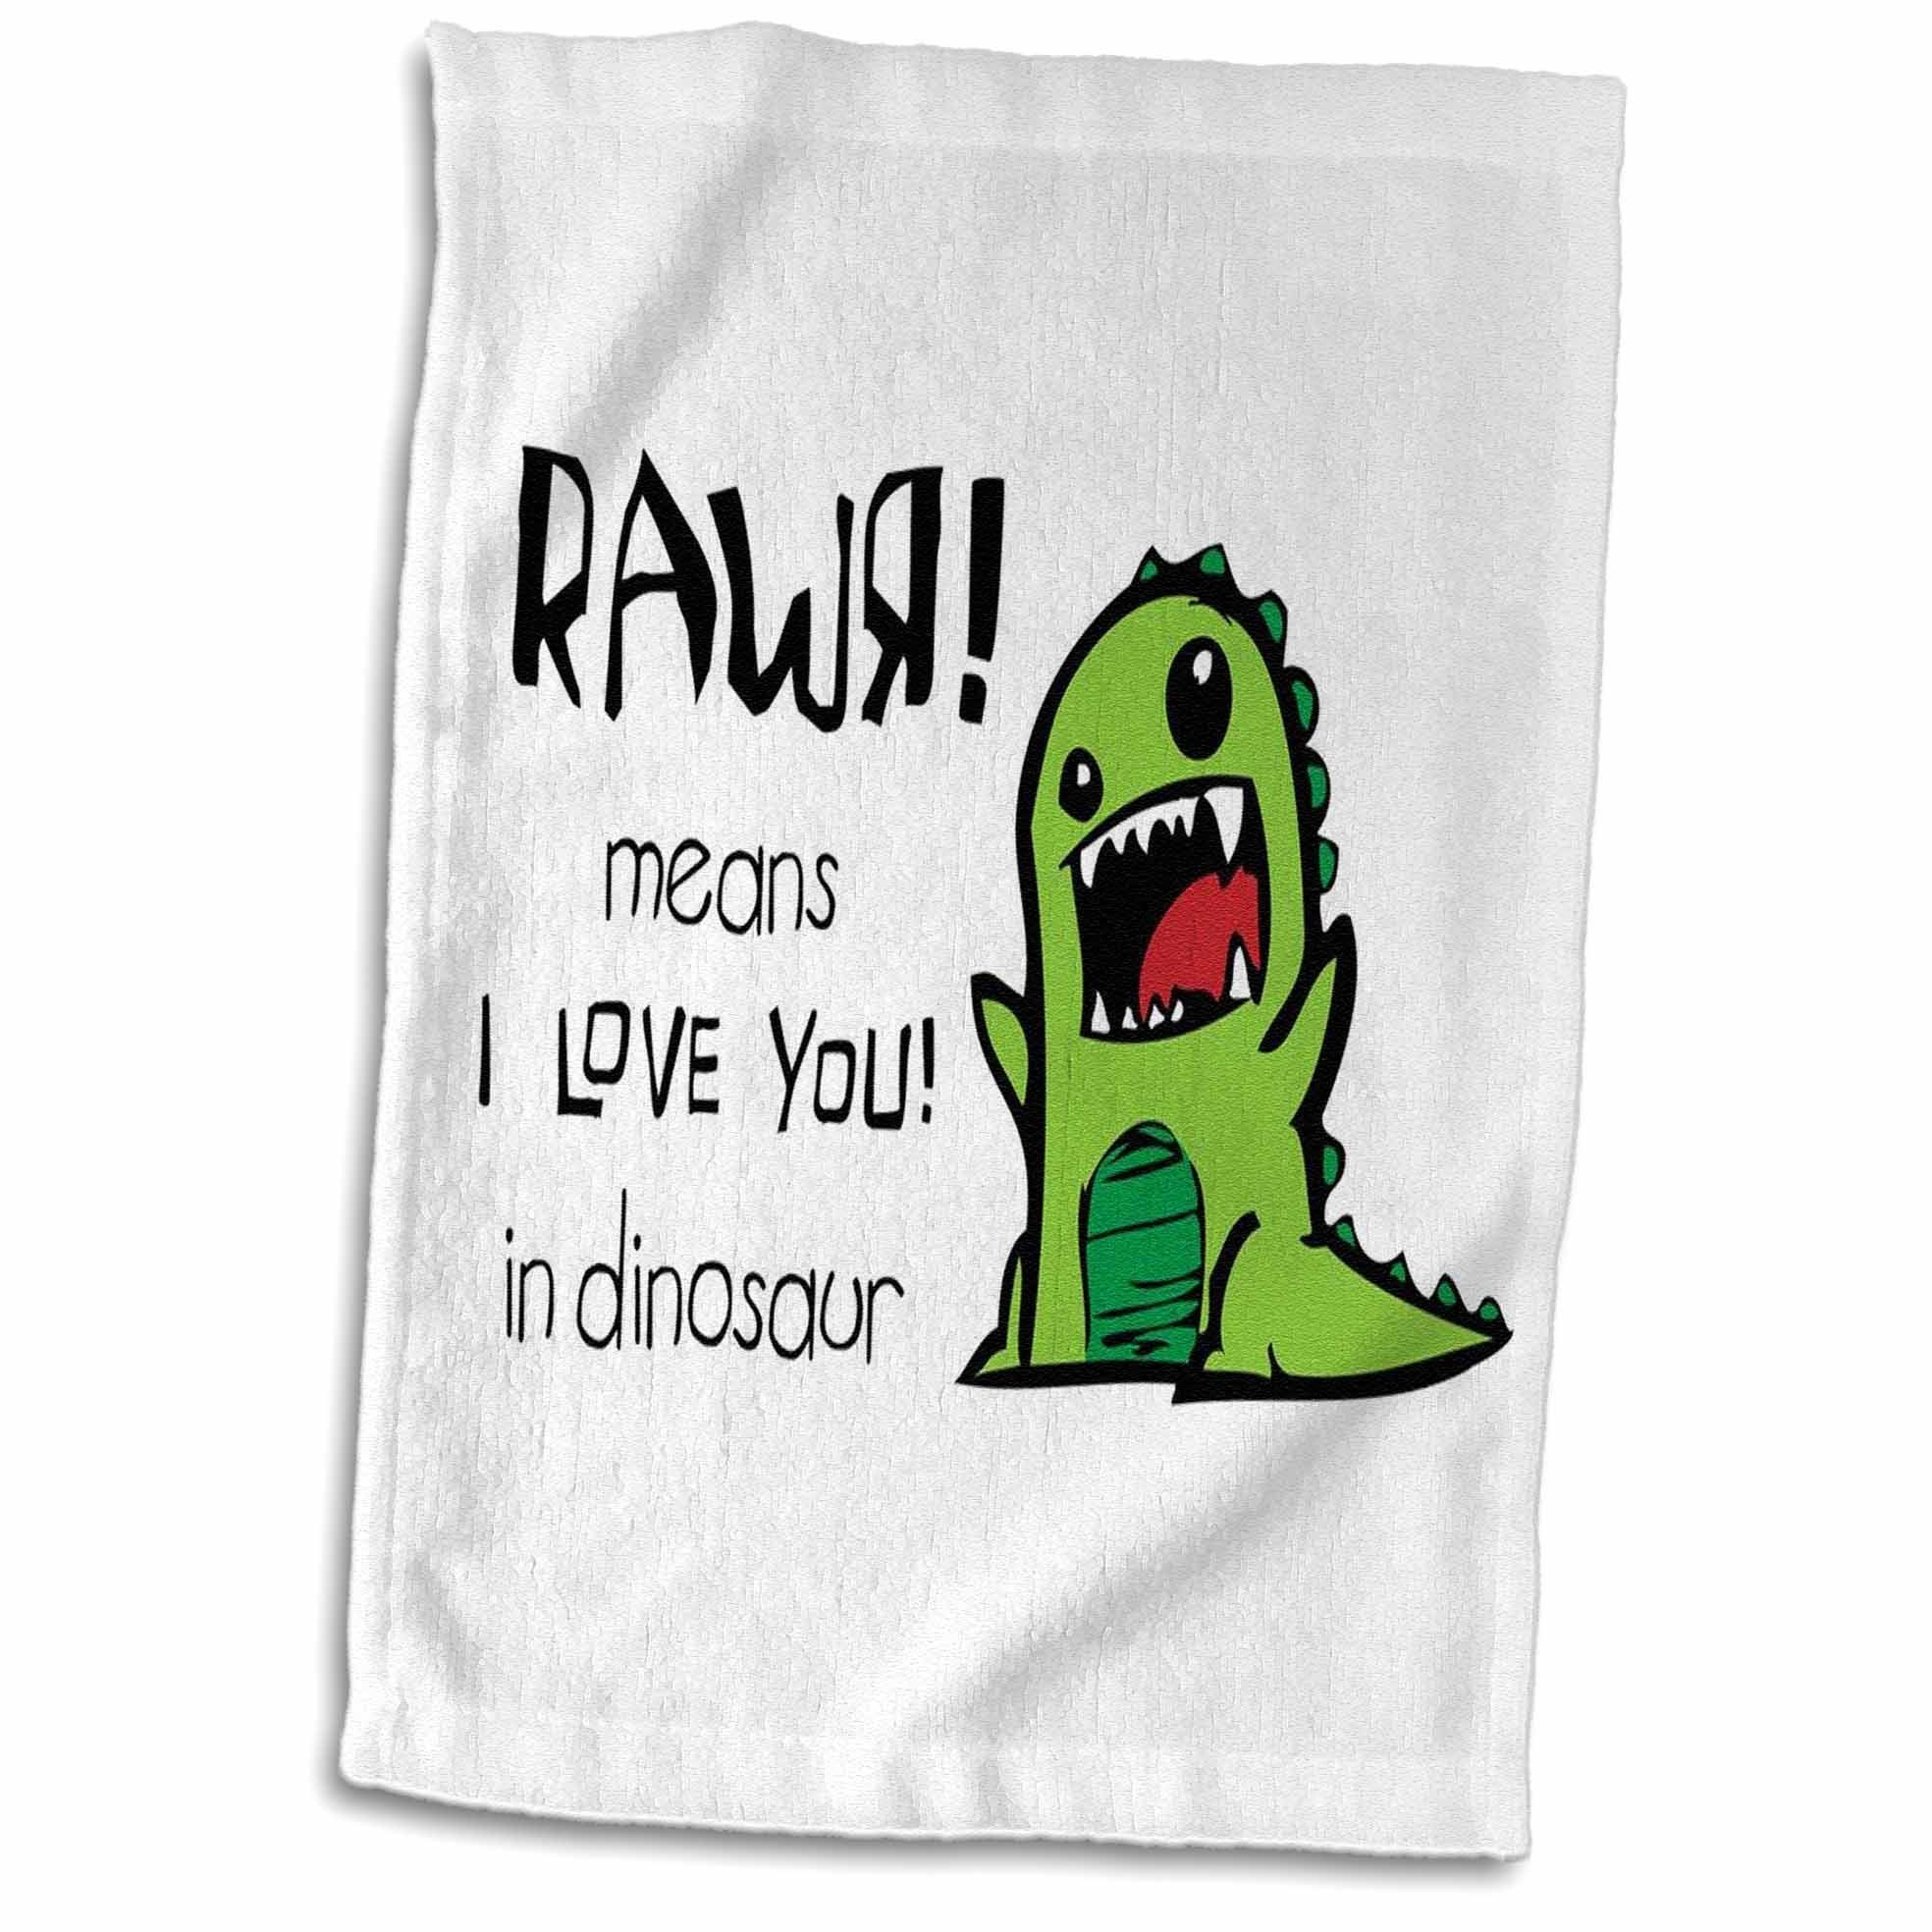 3D Rose Rawr Means I Love You in Dinosaur Towel, 15'' x 22'', Multicolor by 3dRose (Image #1)